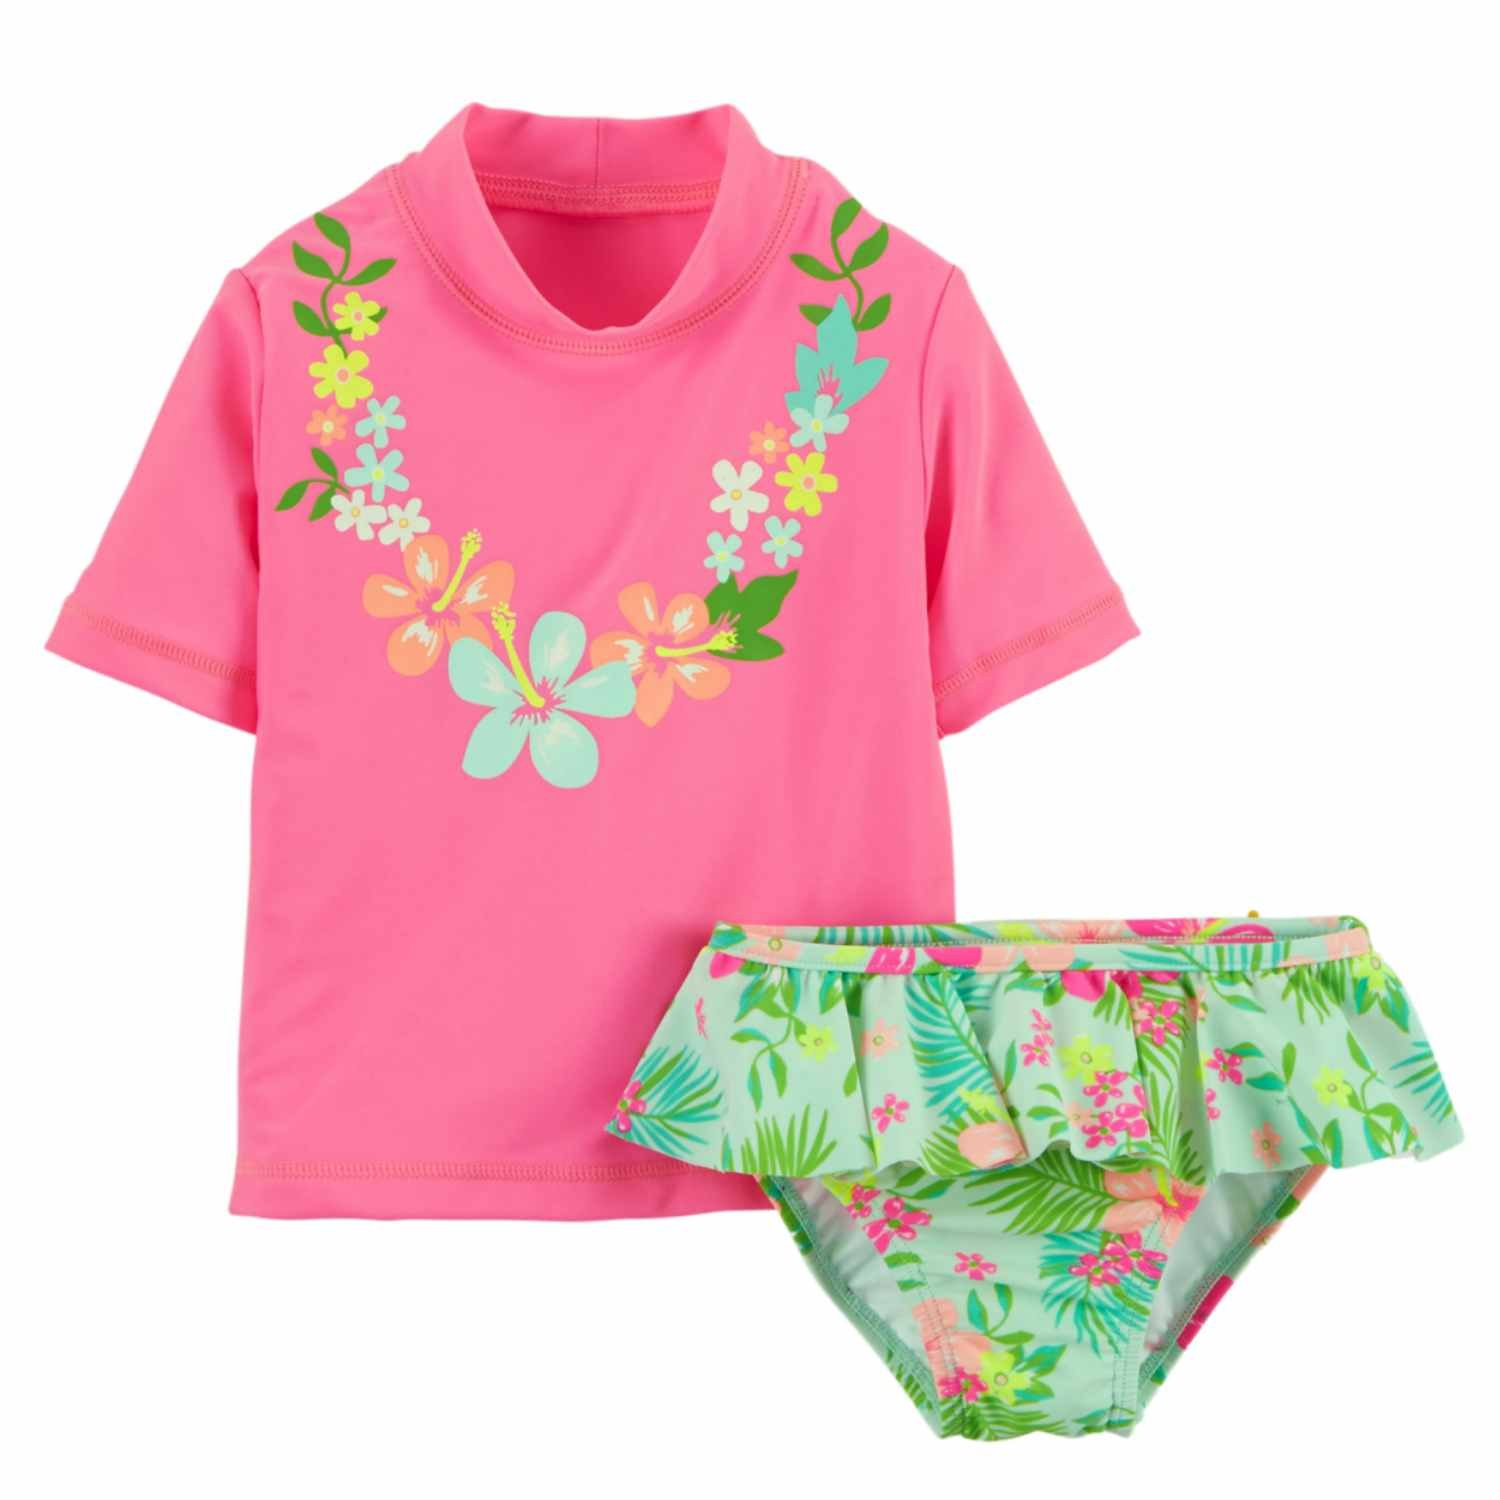 Carter's Infant Girls Pink Swimming Suit Hawaiian Rash Guard Cover up Swim Carters